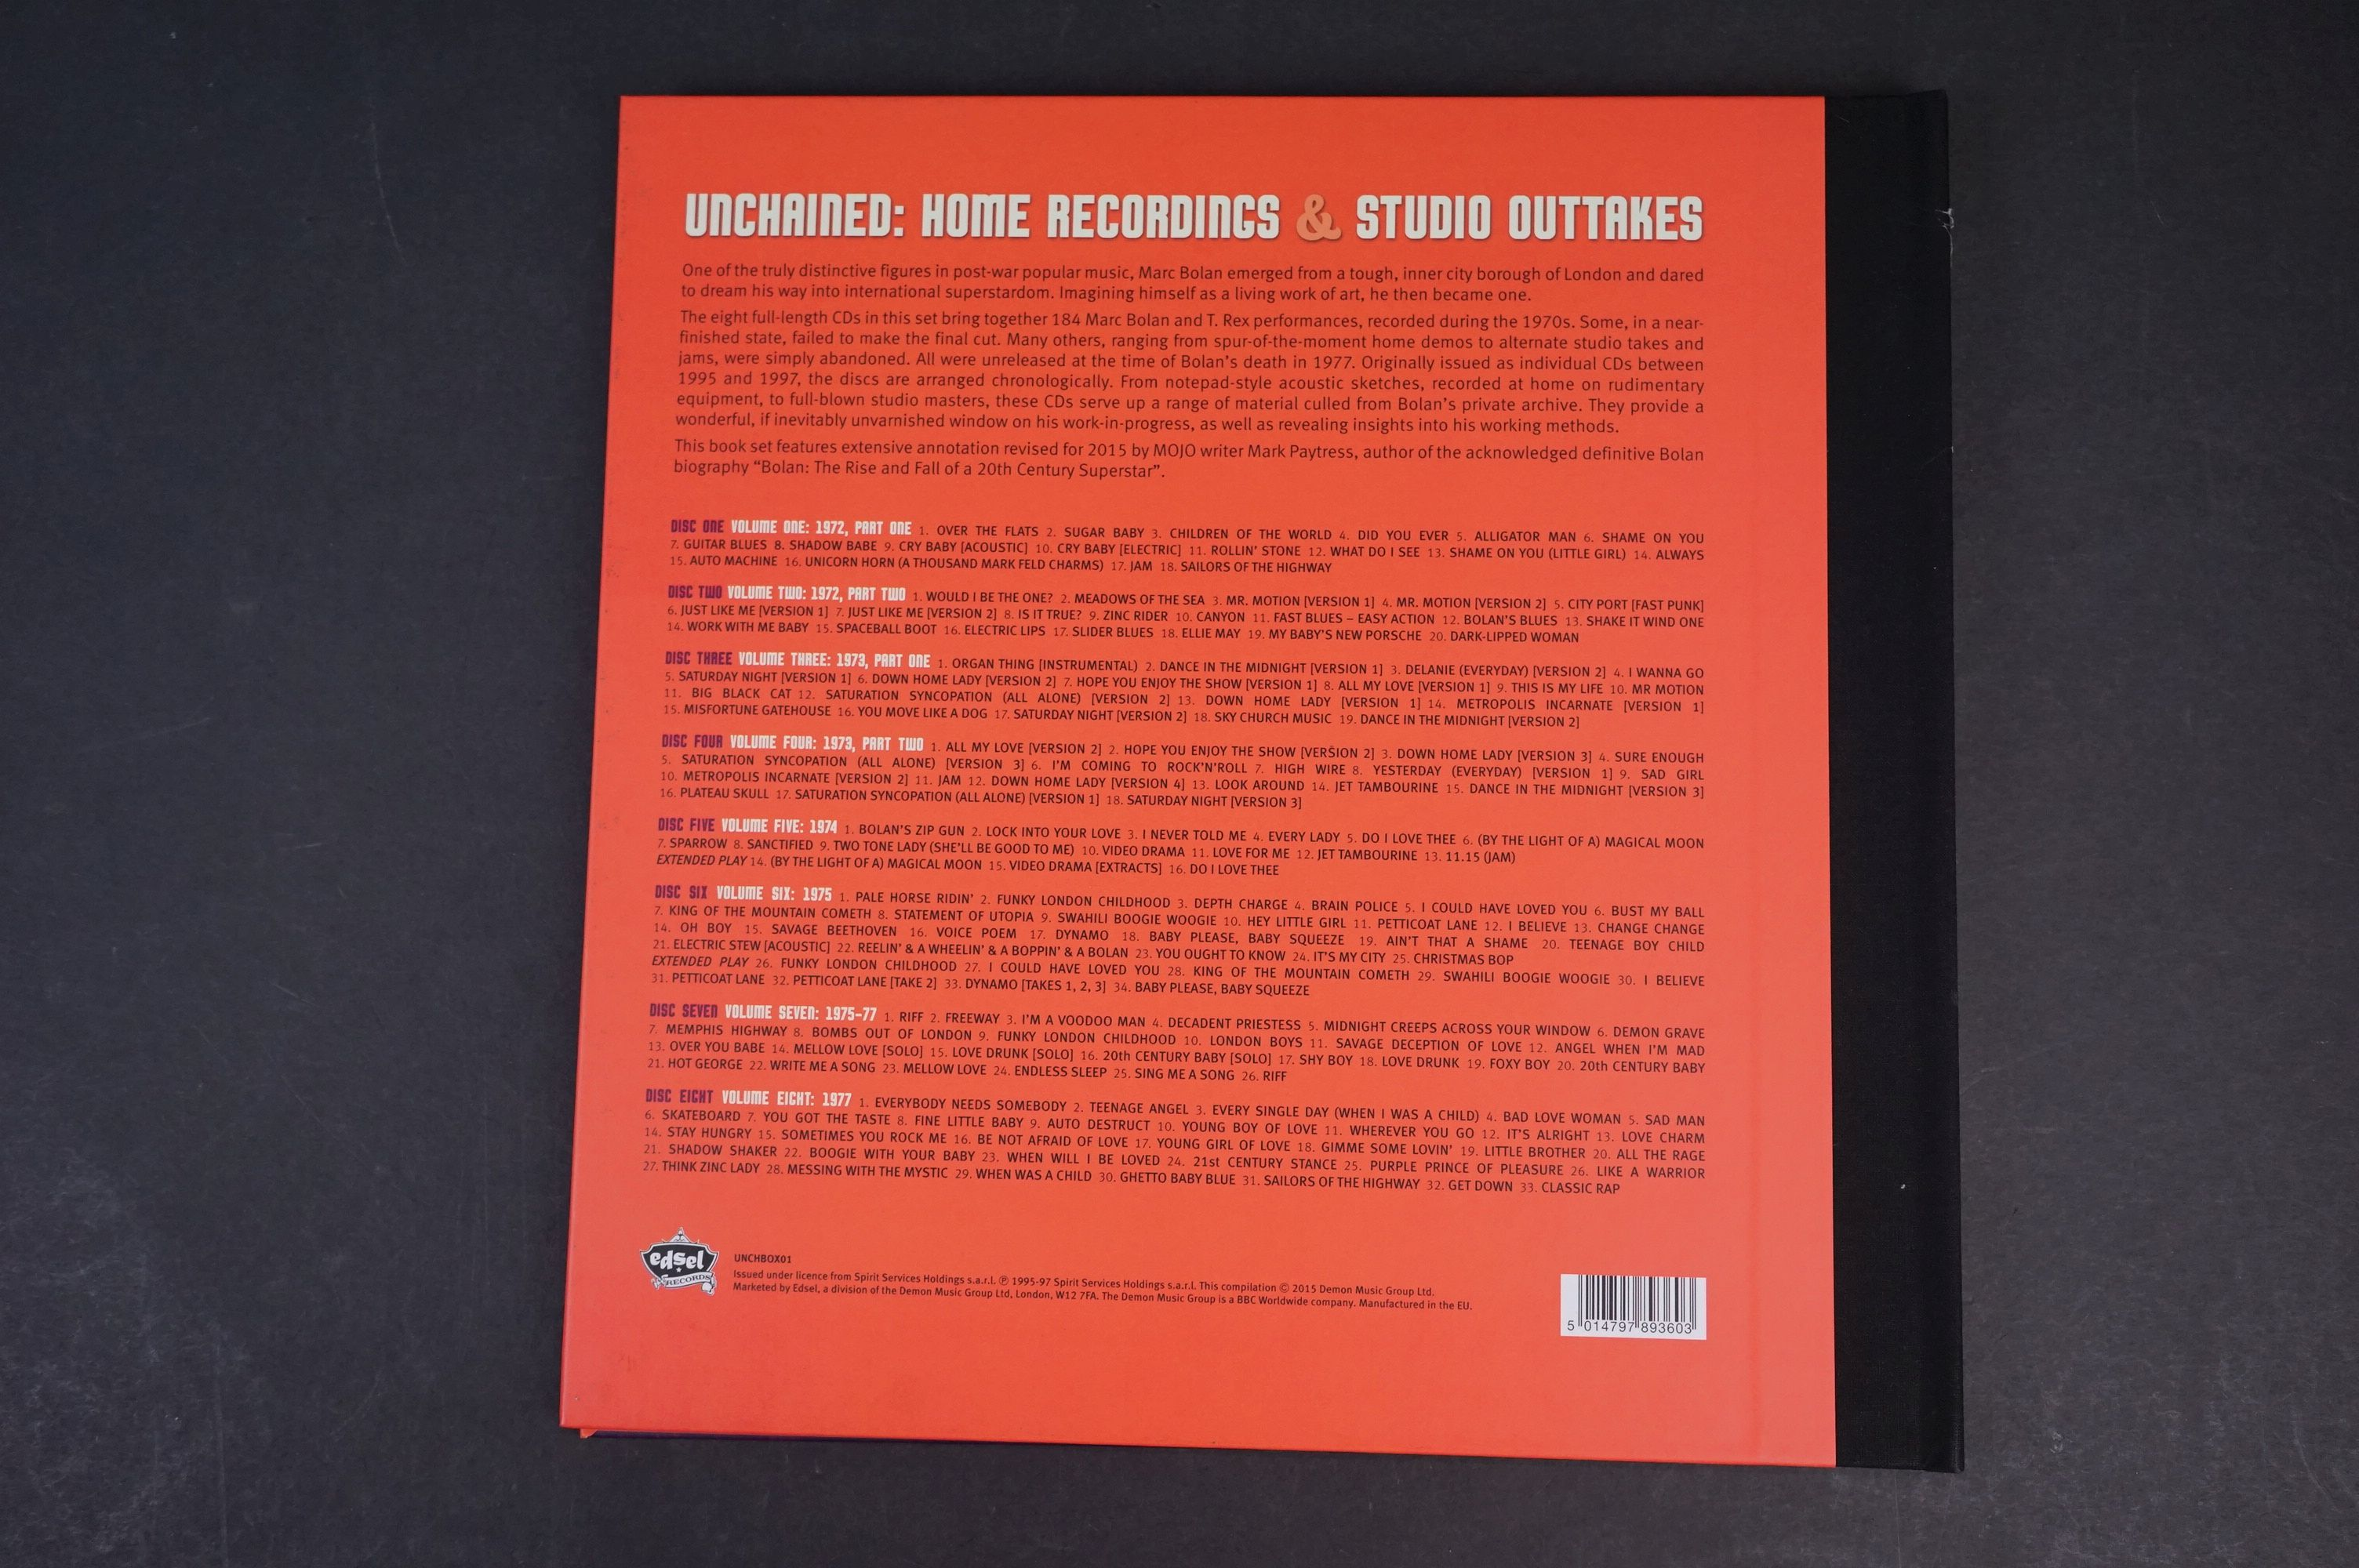 CD - Marc Bolan & T Rex Unchained Home Recordings & Studio Outtakes 8 CD Set UNCHBOX01 ex - Image 6 of 6